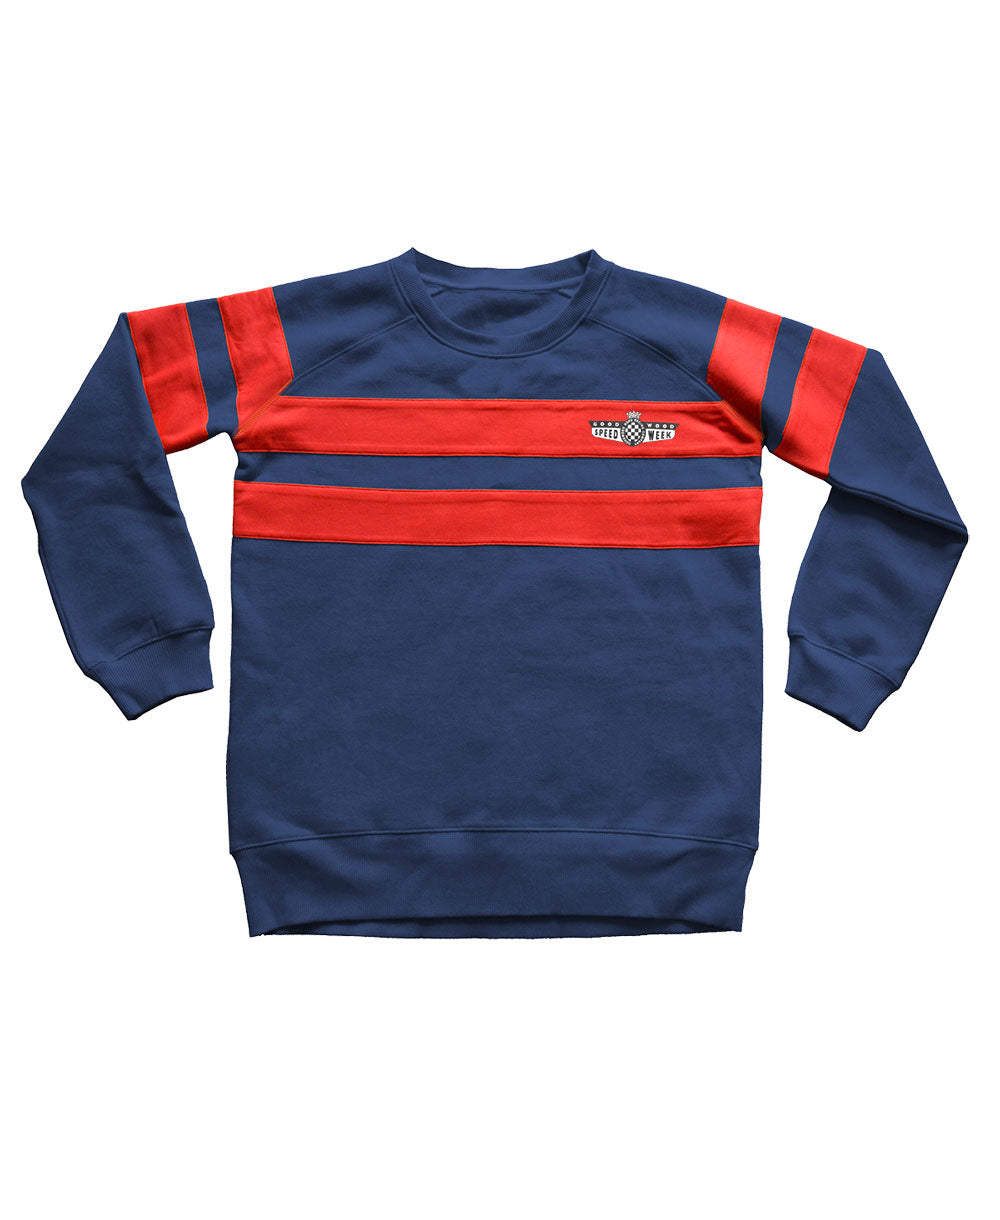 SpeedWeek Striped Sweatshirt in Blue & Red